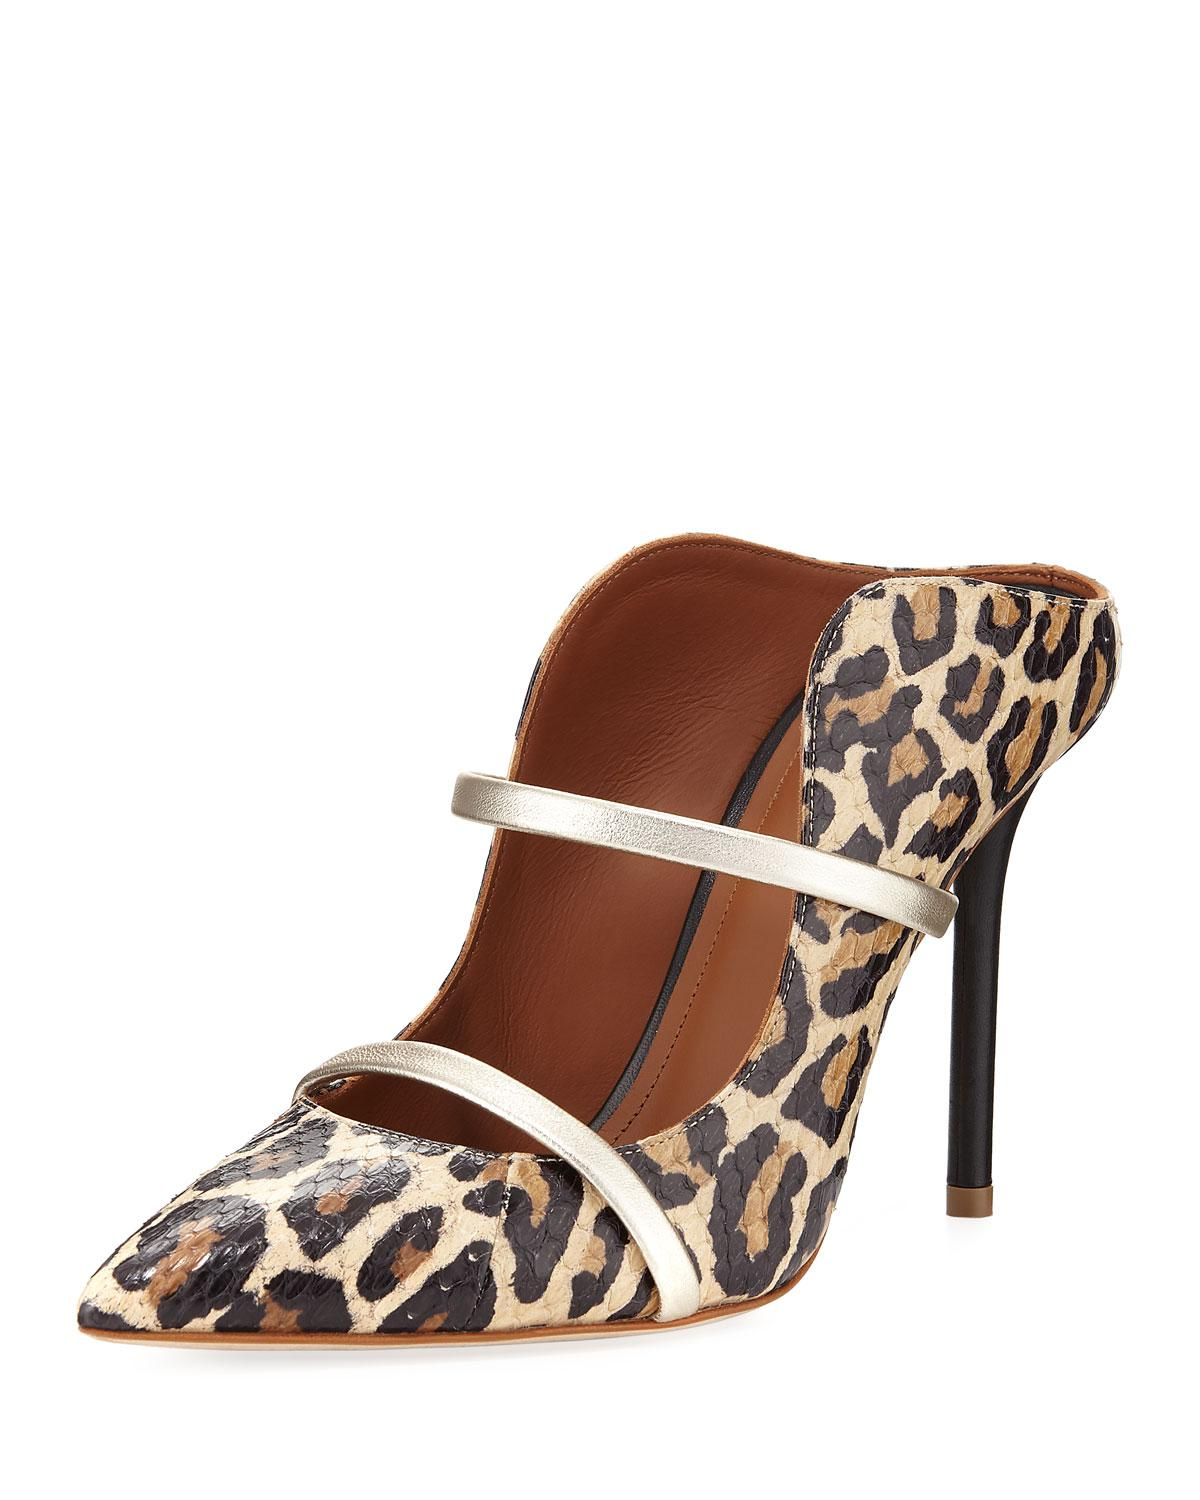 leopard print mules - Brown Malone Souliers ZUmYLw4s7N